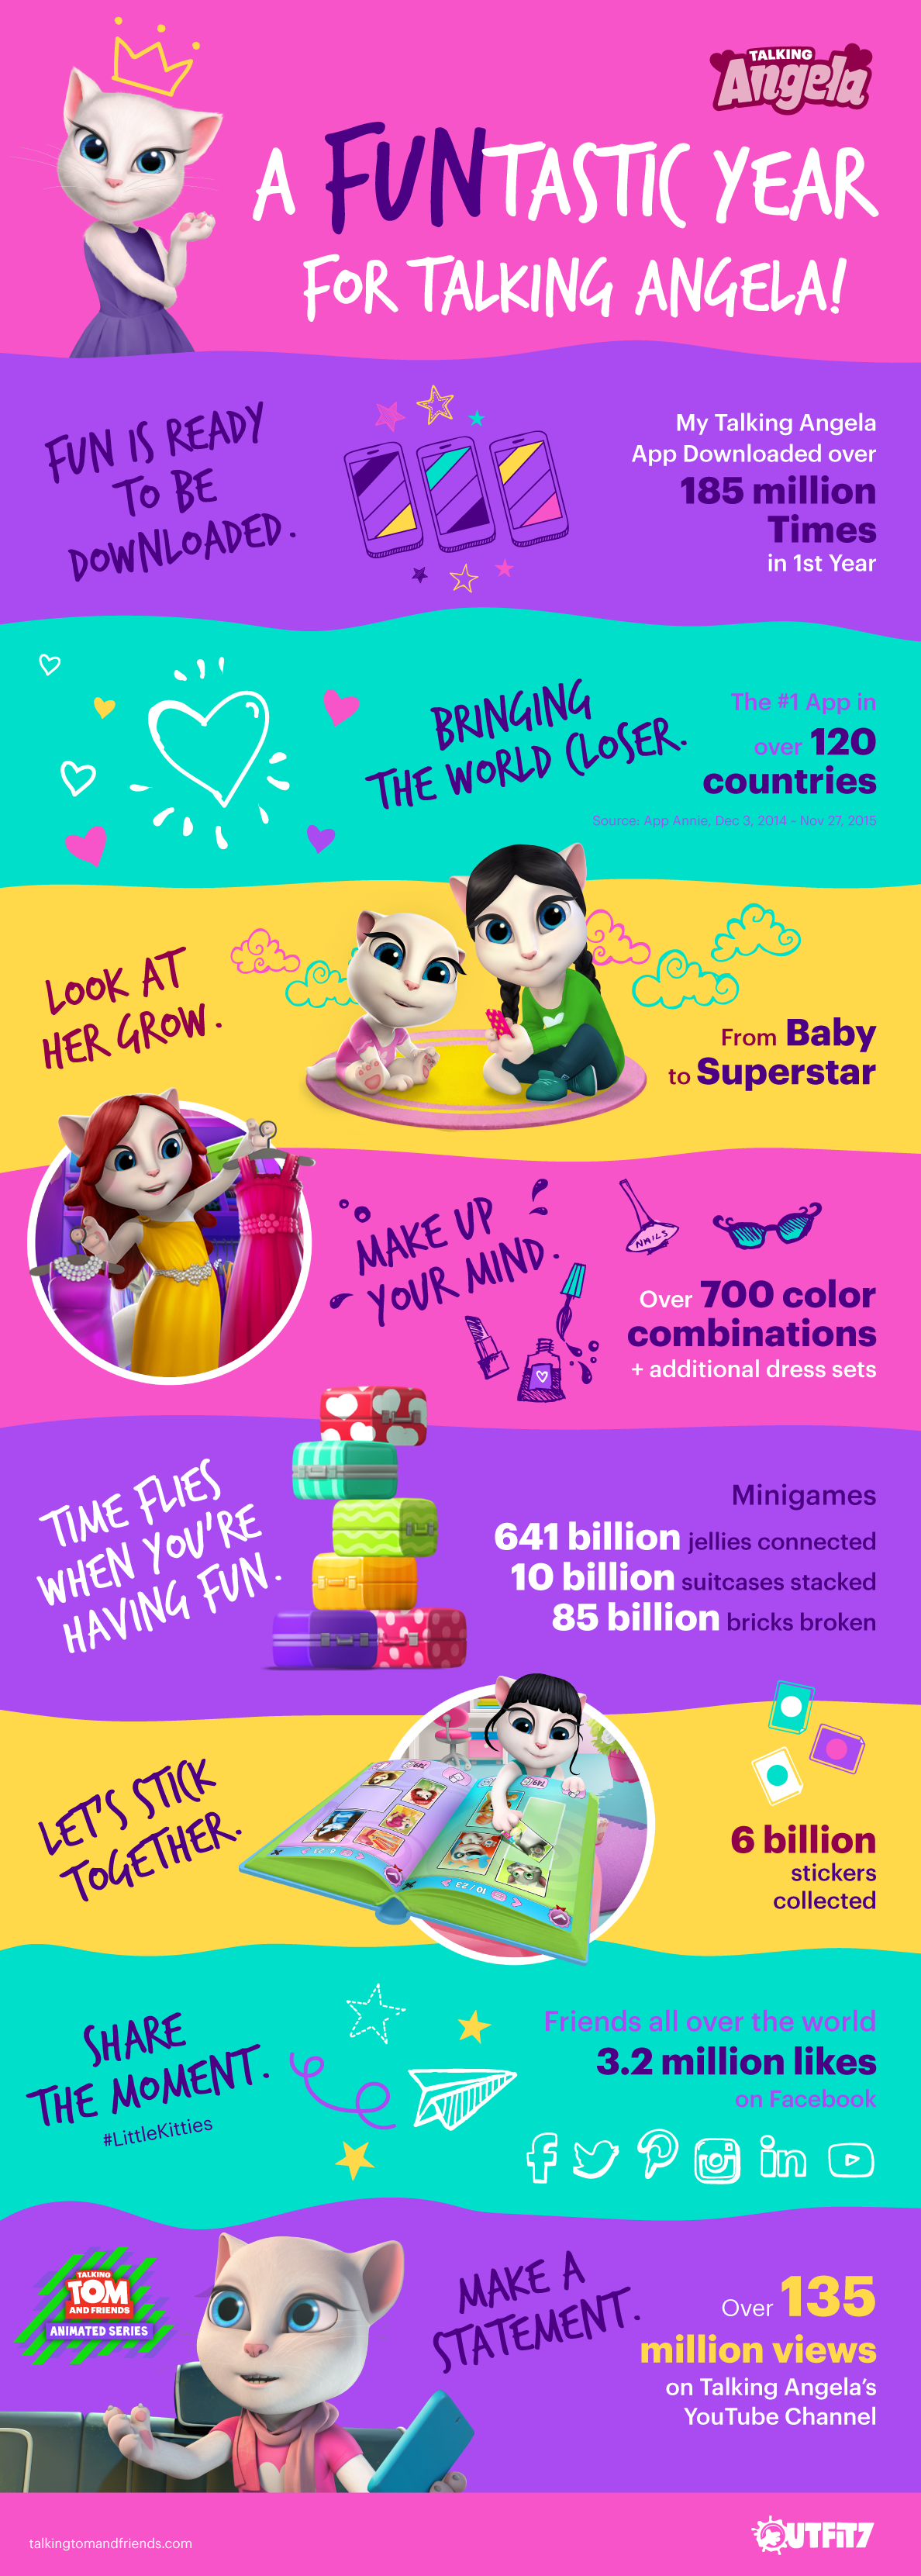 A STAR IS BORN! OUTFIT7'S TALKING ANGELA CAPTIVATES MILLIONS!